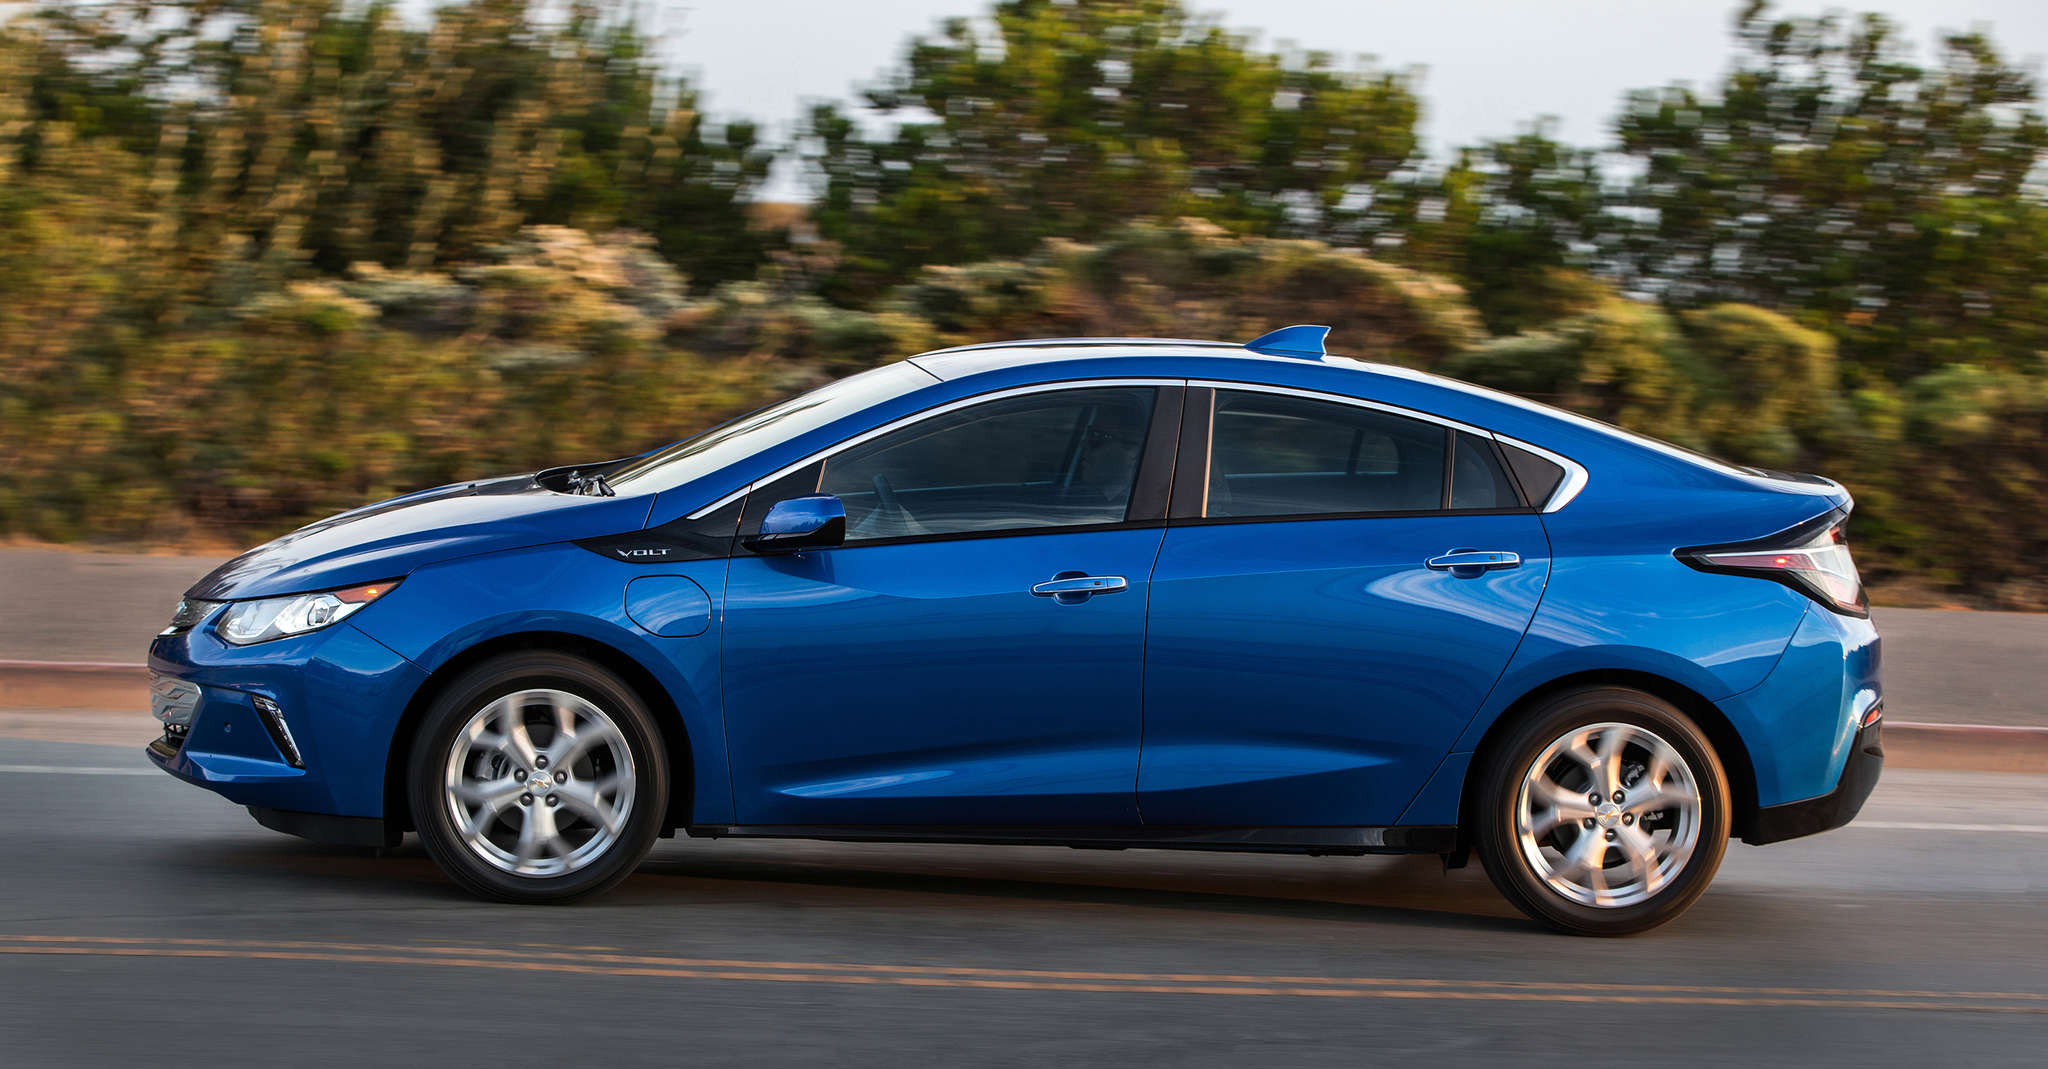 The 2016 Chevrolet Volt was improved to make it run longer between plug-ins and fill-ups.